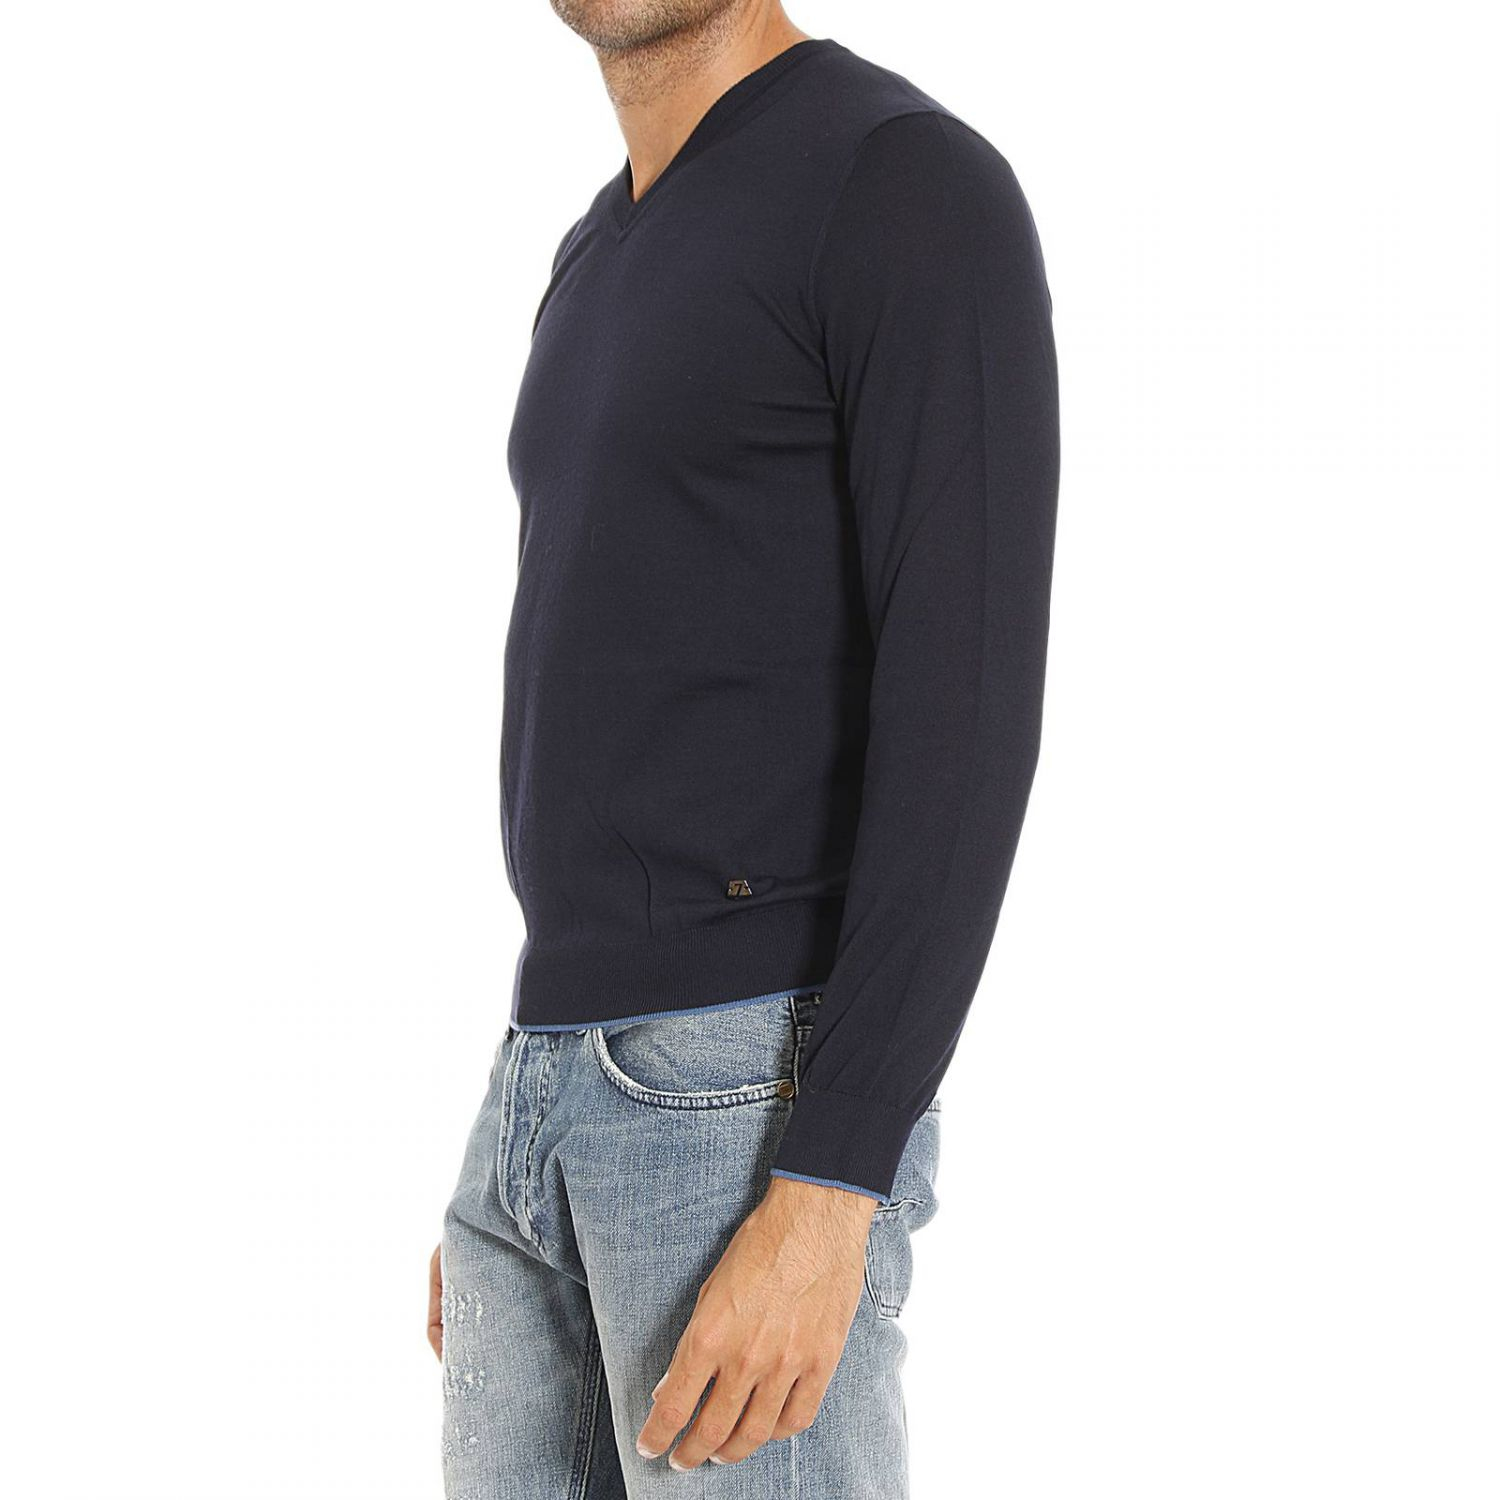 Zegna Sweater 84